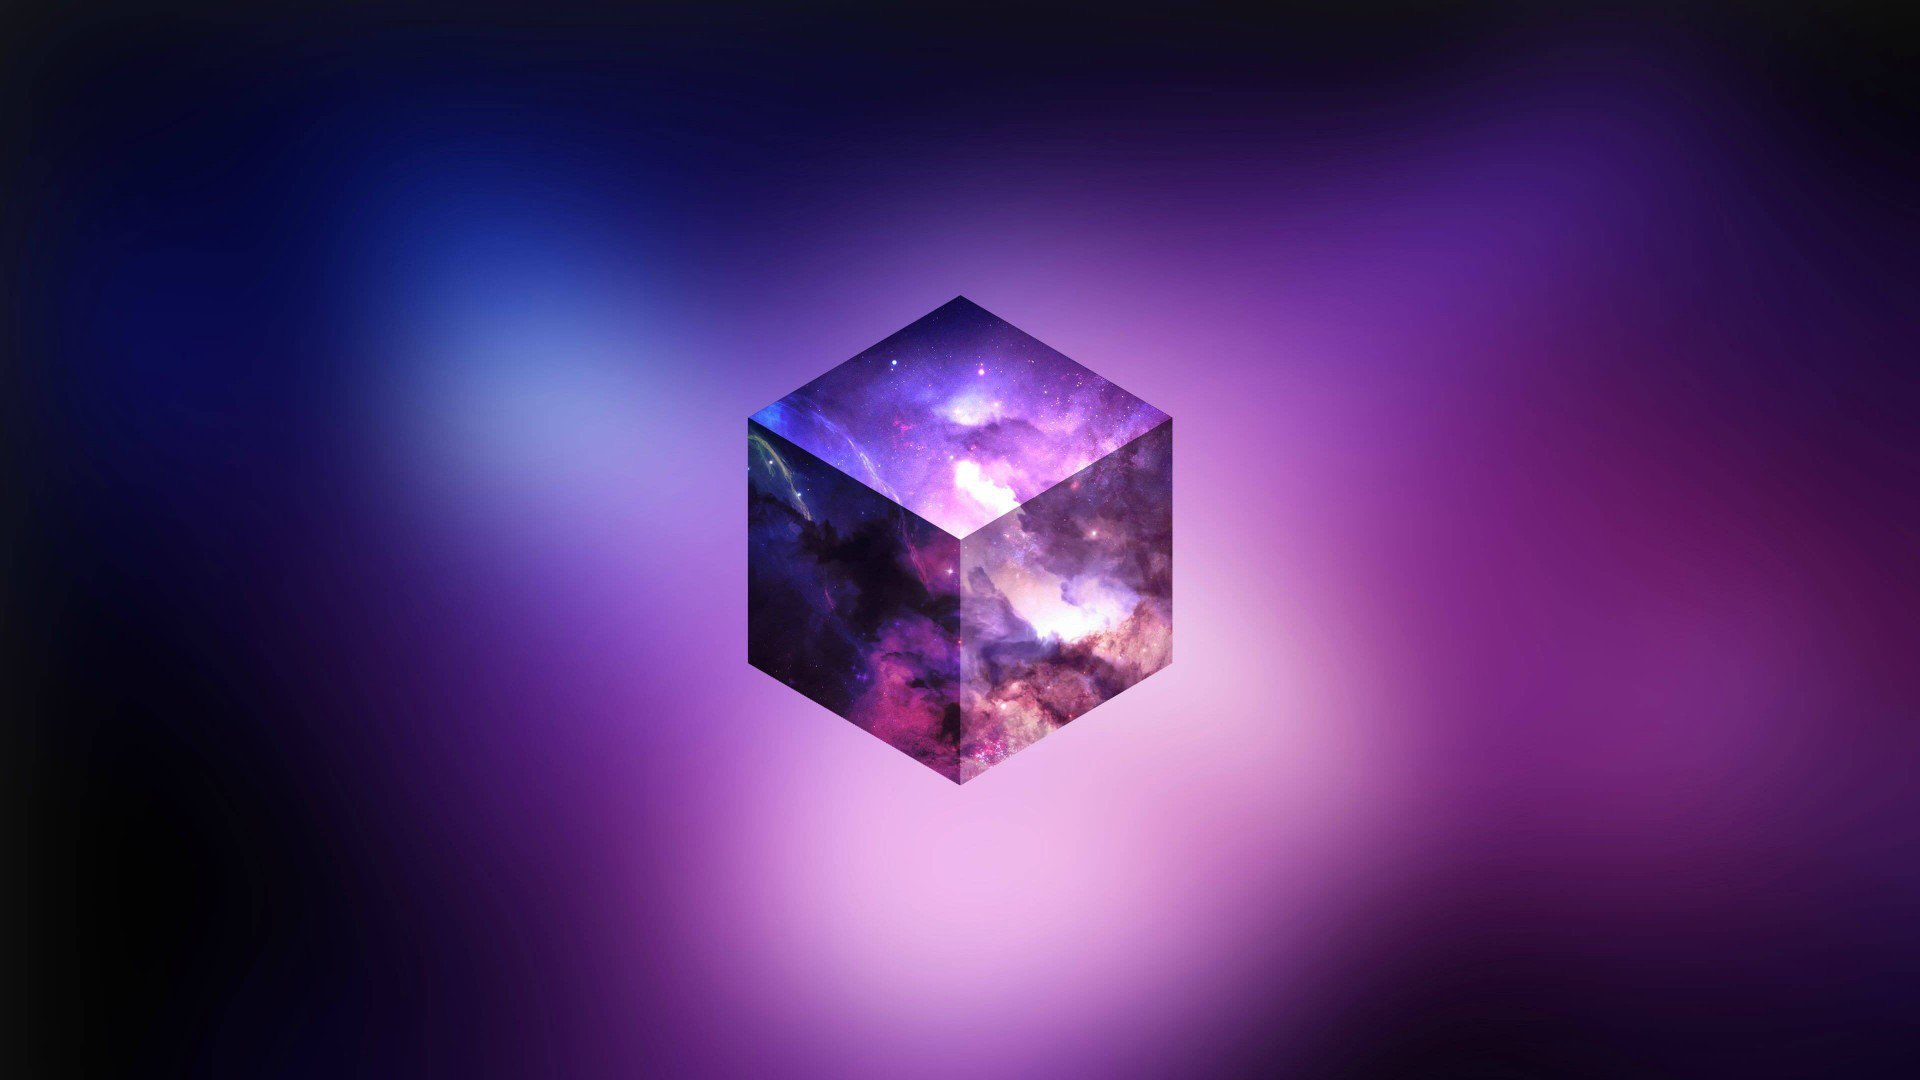 Download full hd Cube PC background ID:71595 for free